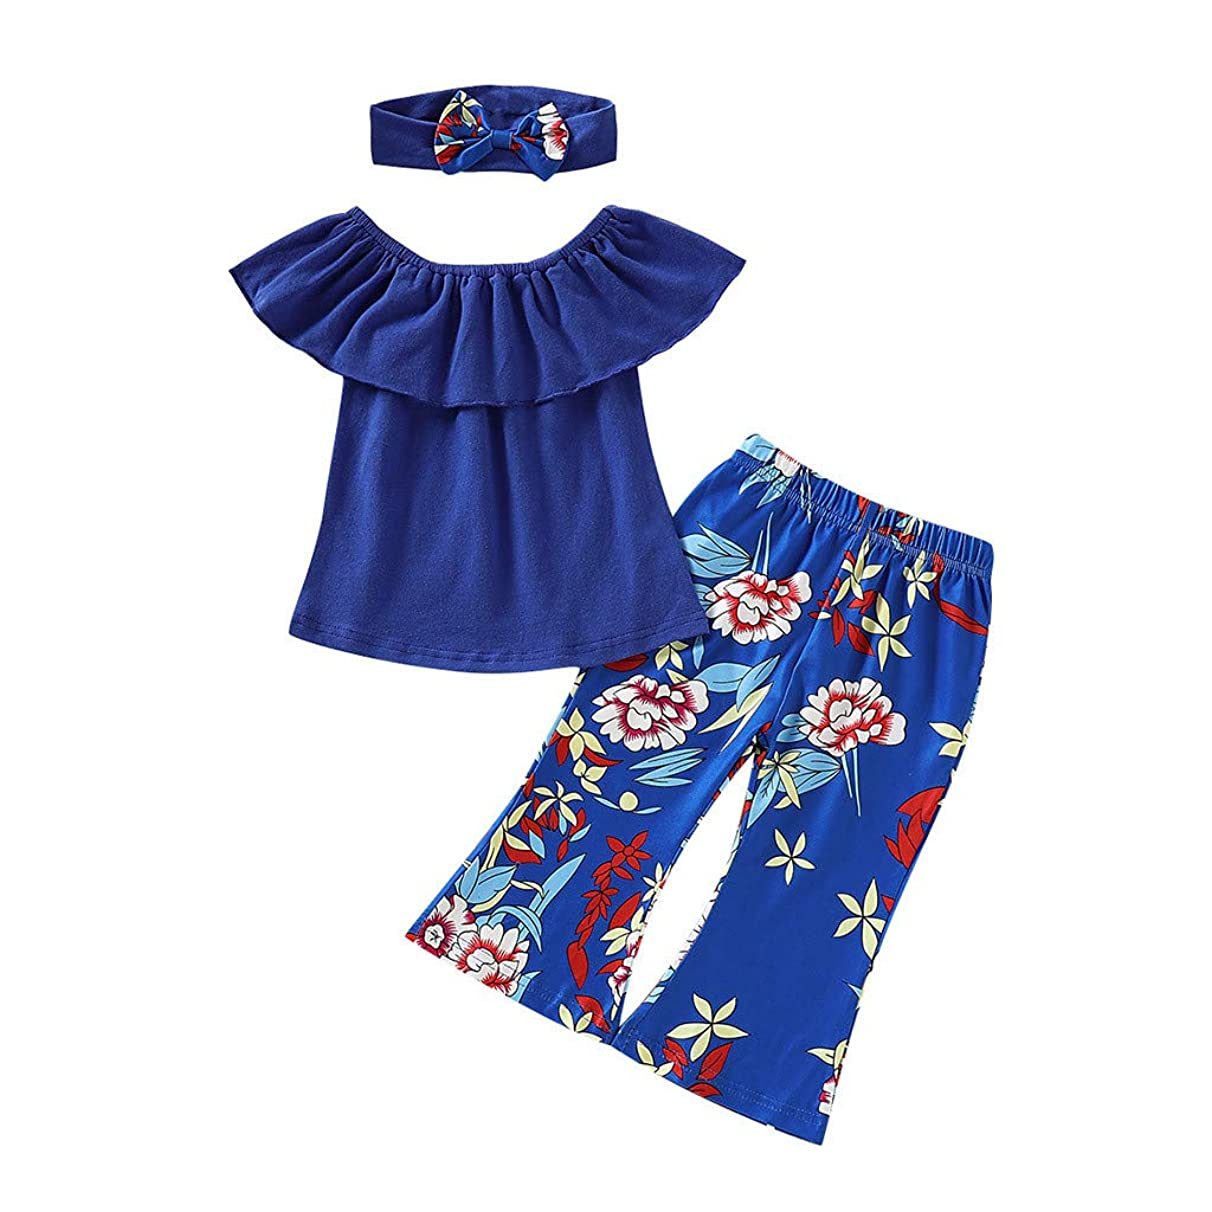 ?Ywoow? Baby Clothes Set, Toddler Baby Girls Off Shoulder Solid Tops+Floral Print Pants+Headband Outfits